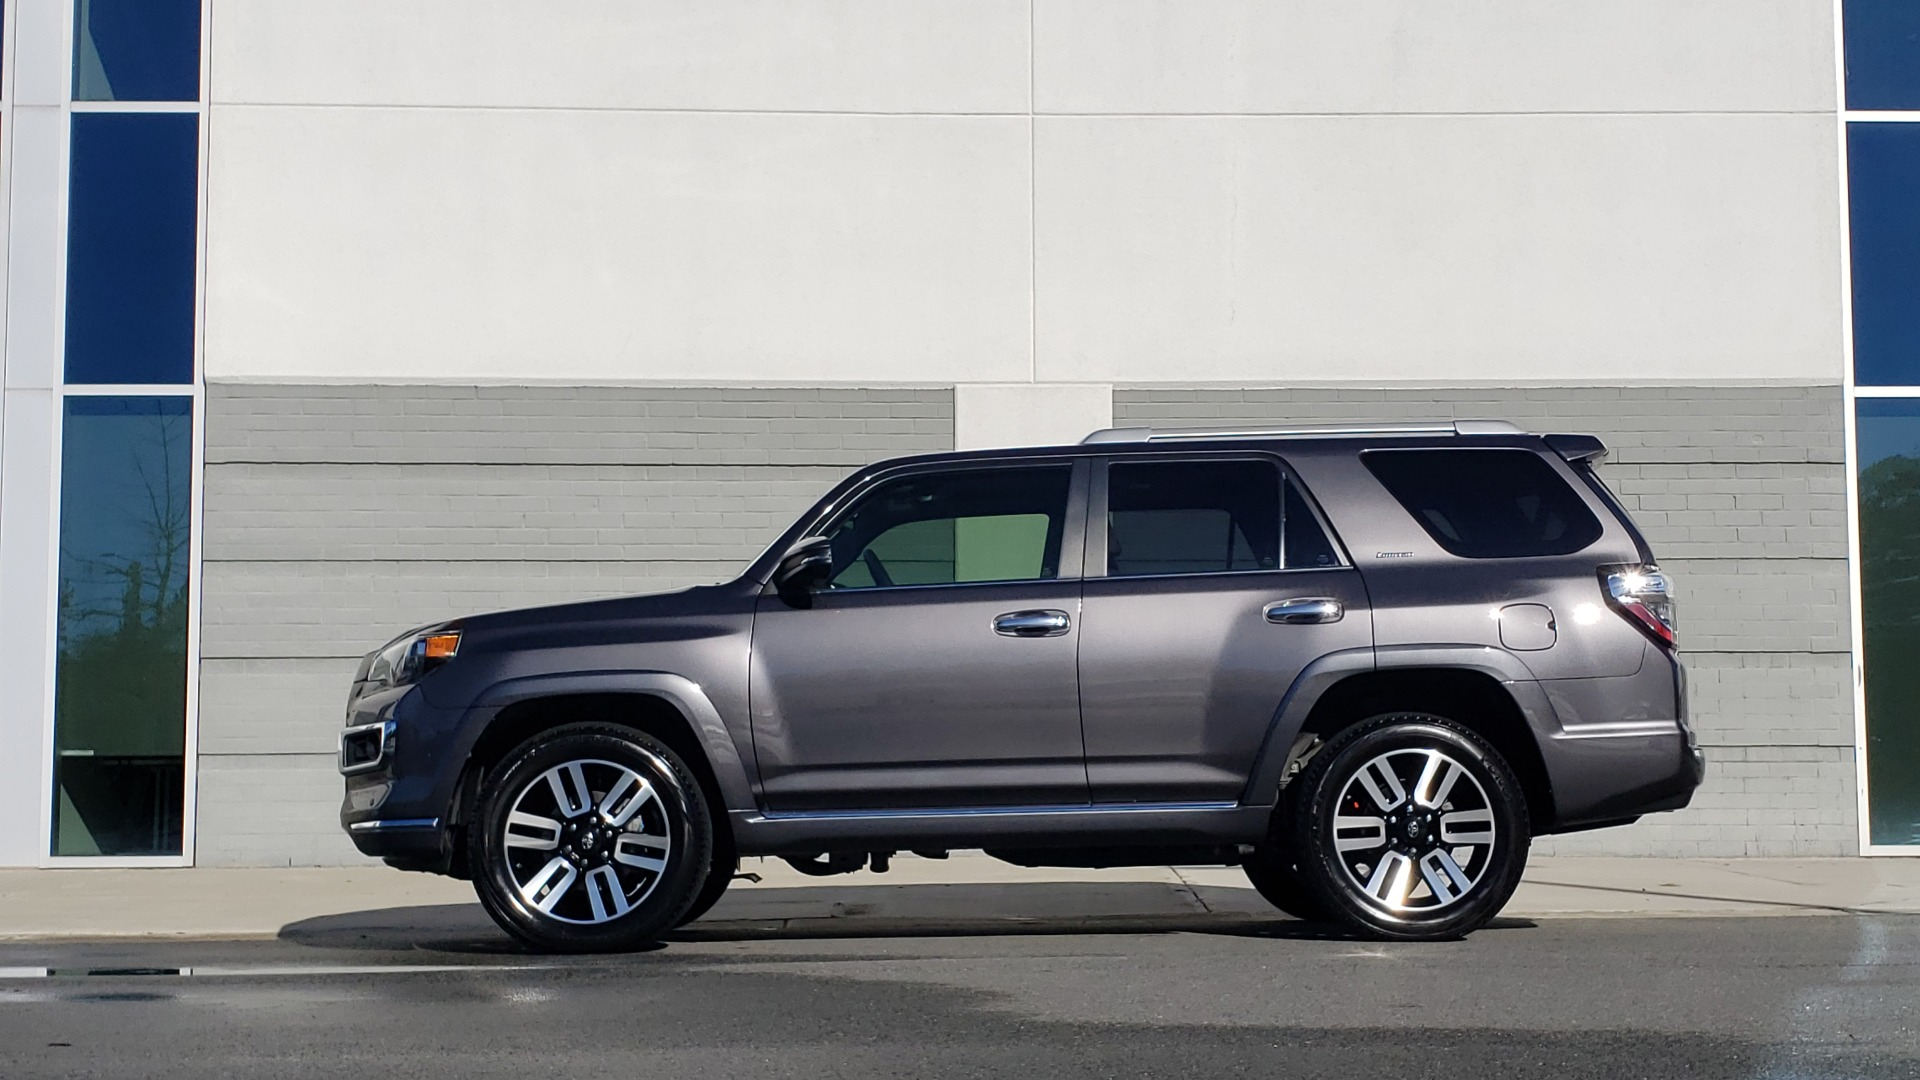 Used 2018 Toyota 4RUNNER LIMITED 4X4 / 4.0 V6 / AUTO / NAV / SUNROOF / REARVIEW for sale Sold at Formula Imports in Charlotte NC 28227 3